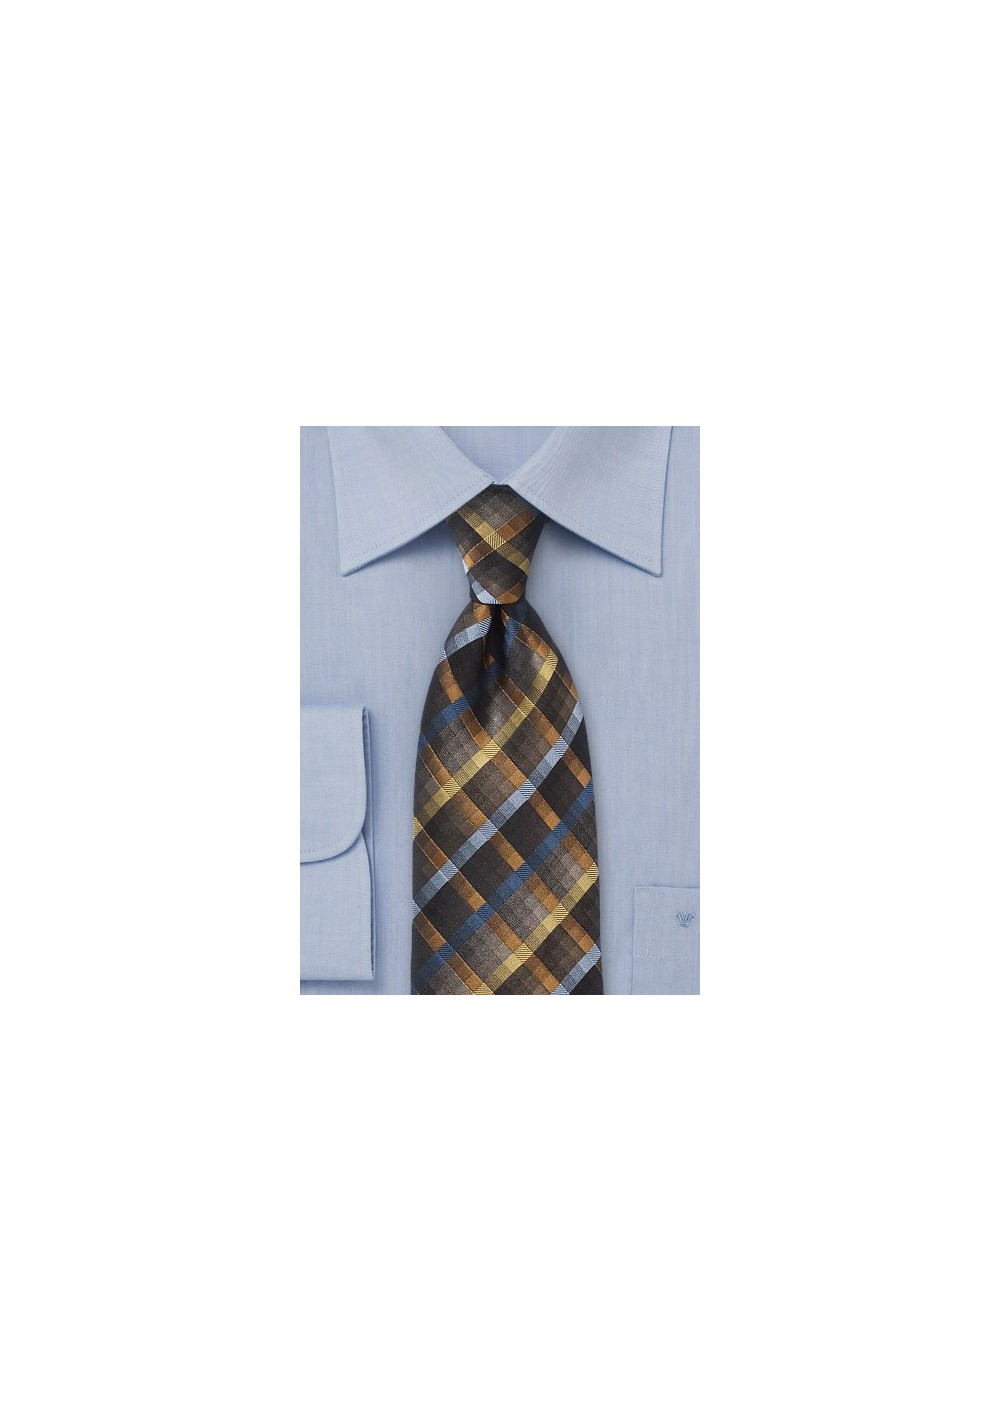 Intricate Diamond Patterned Tie in Black and Bronzes